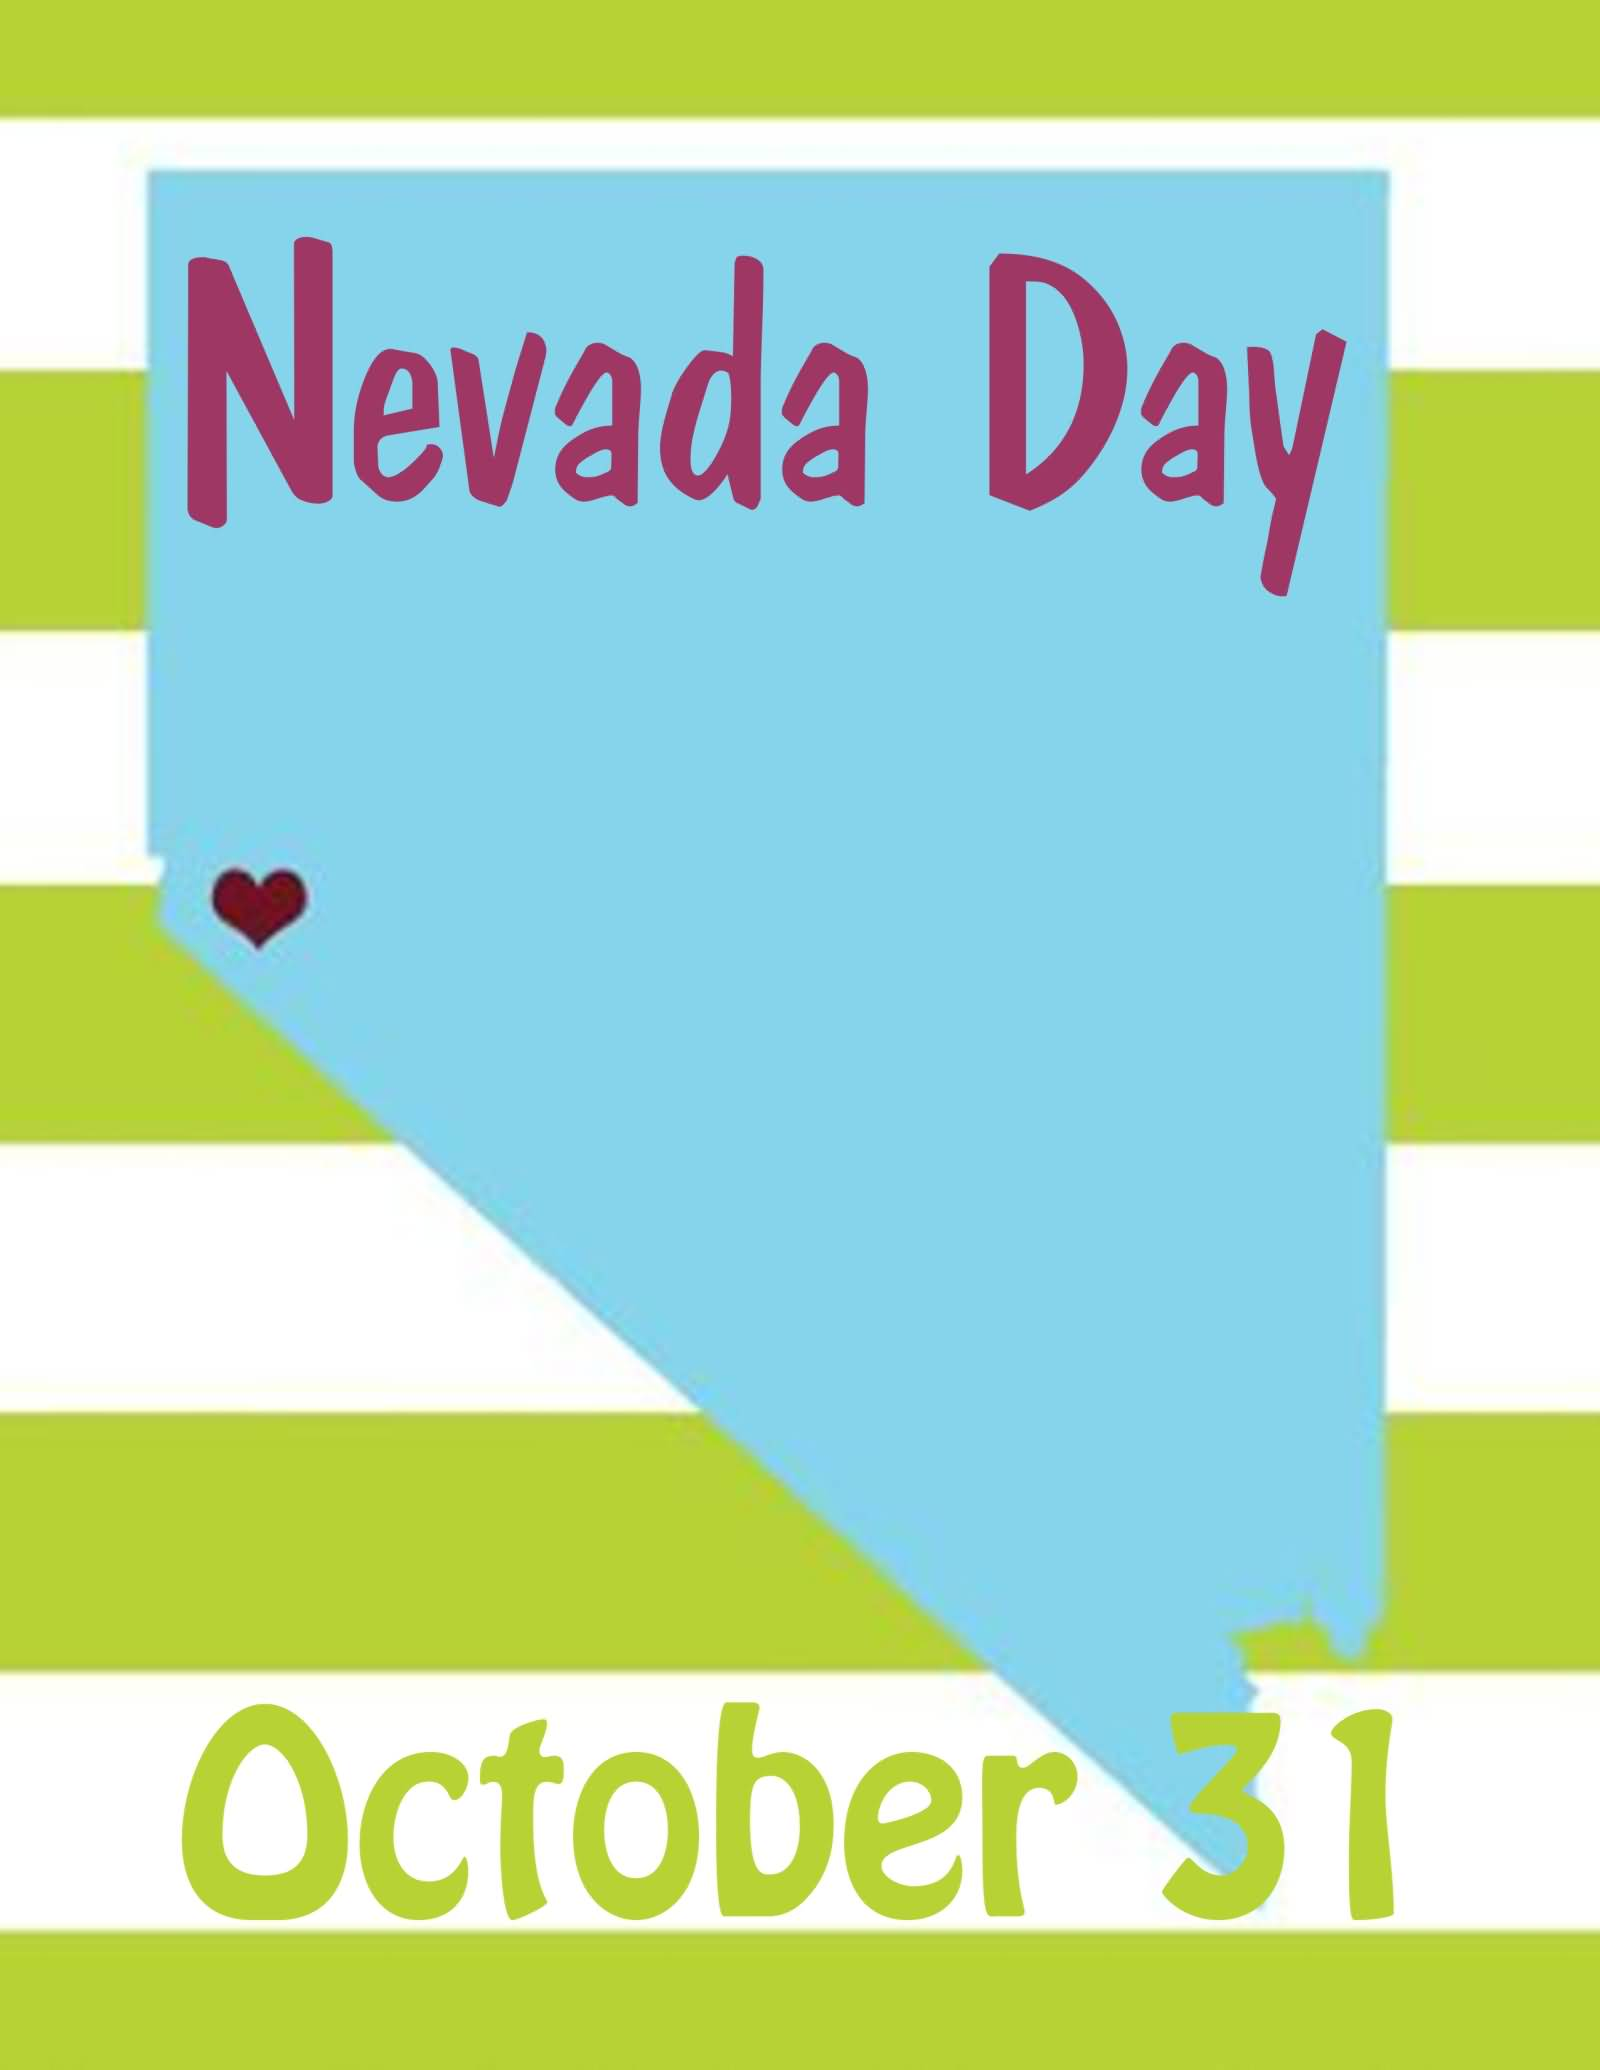 Nevada-Day-October-31-Picture